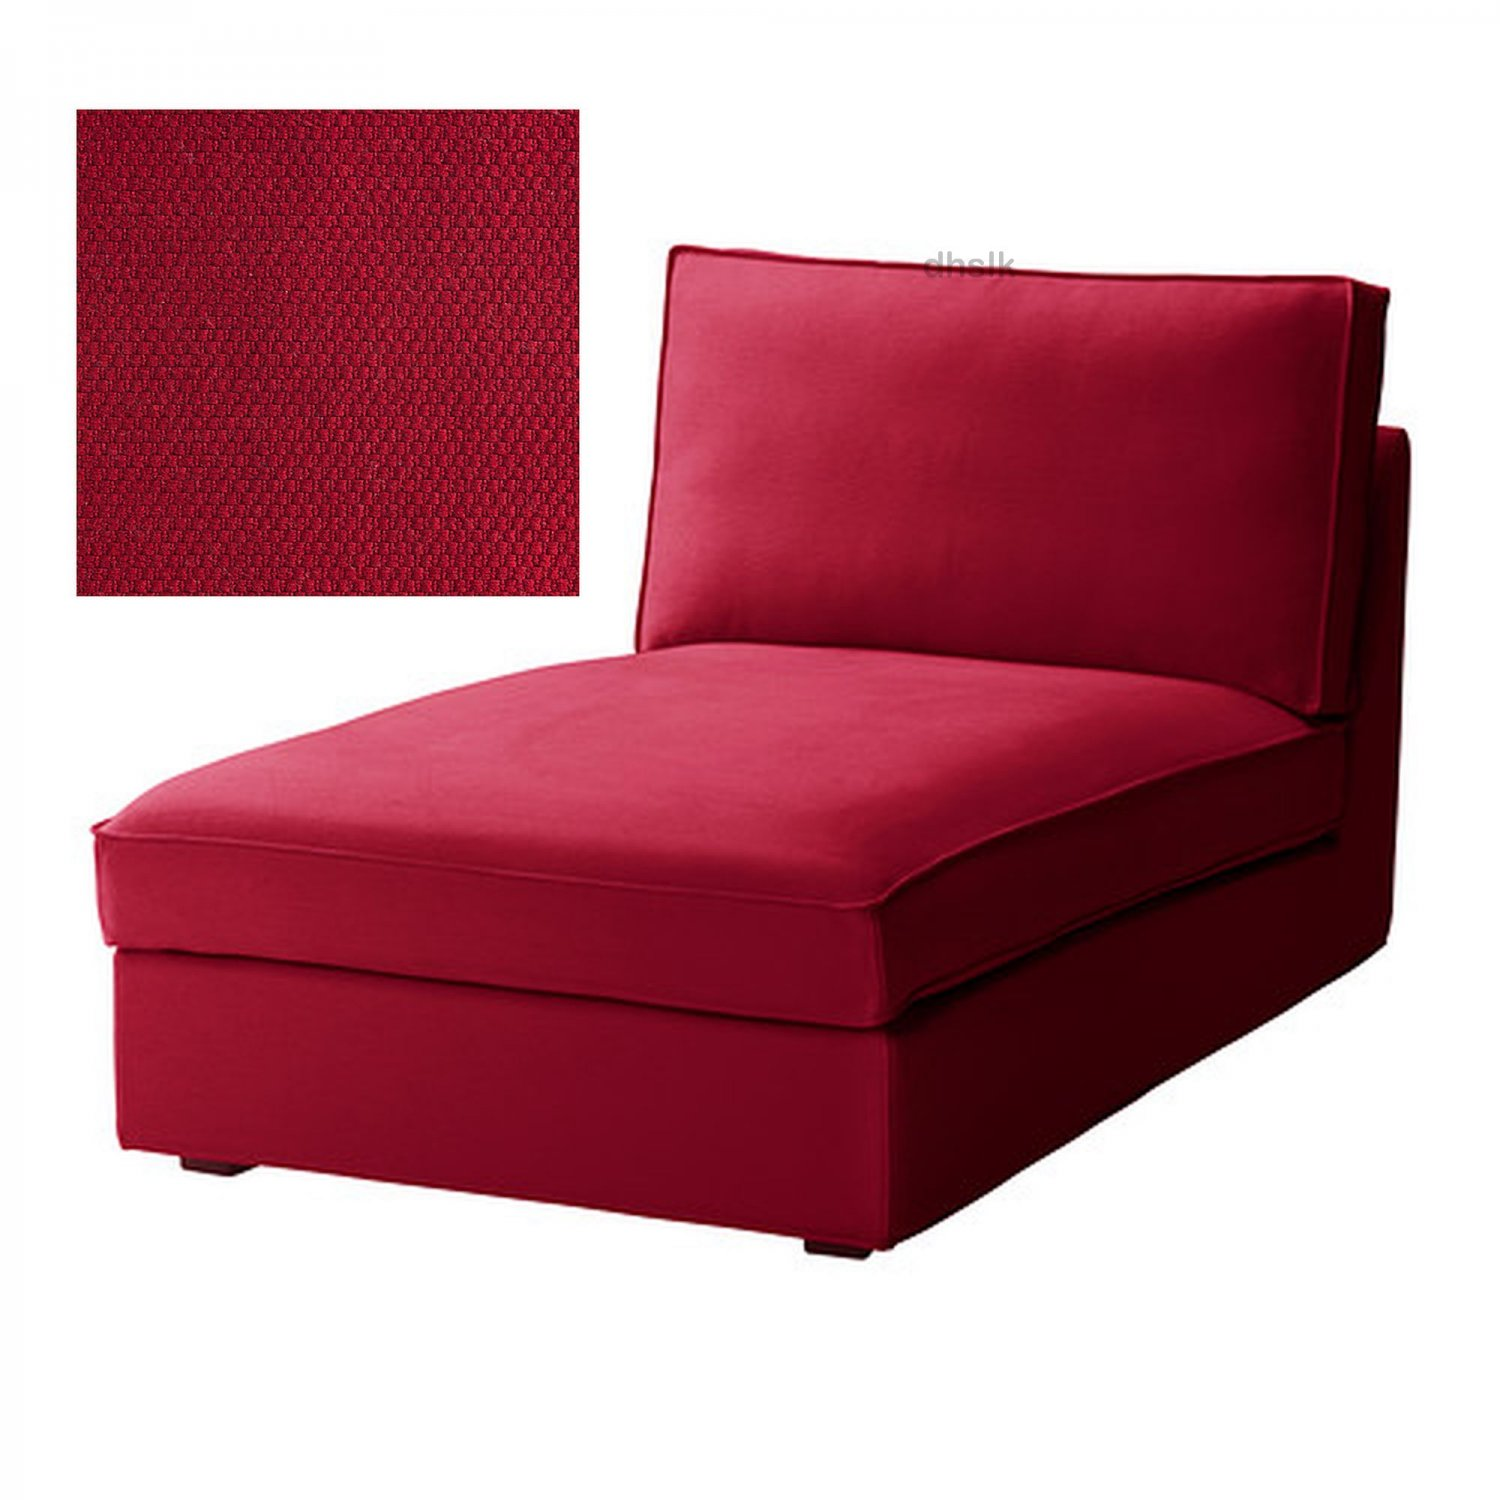 Ikea kivik chaise slipcover cover dansbo medium red bezug for Chaise lounge covers cotton